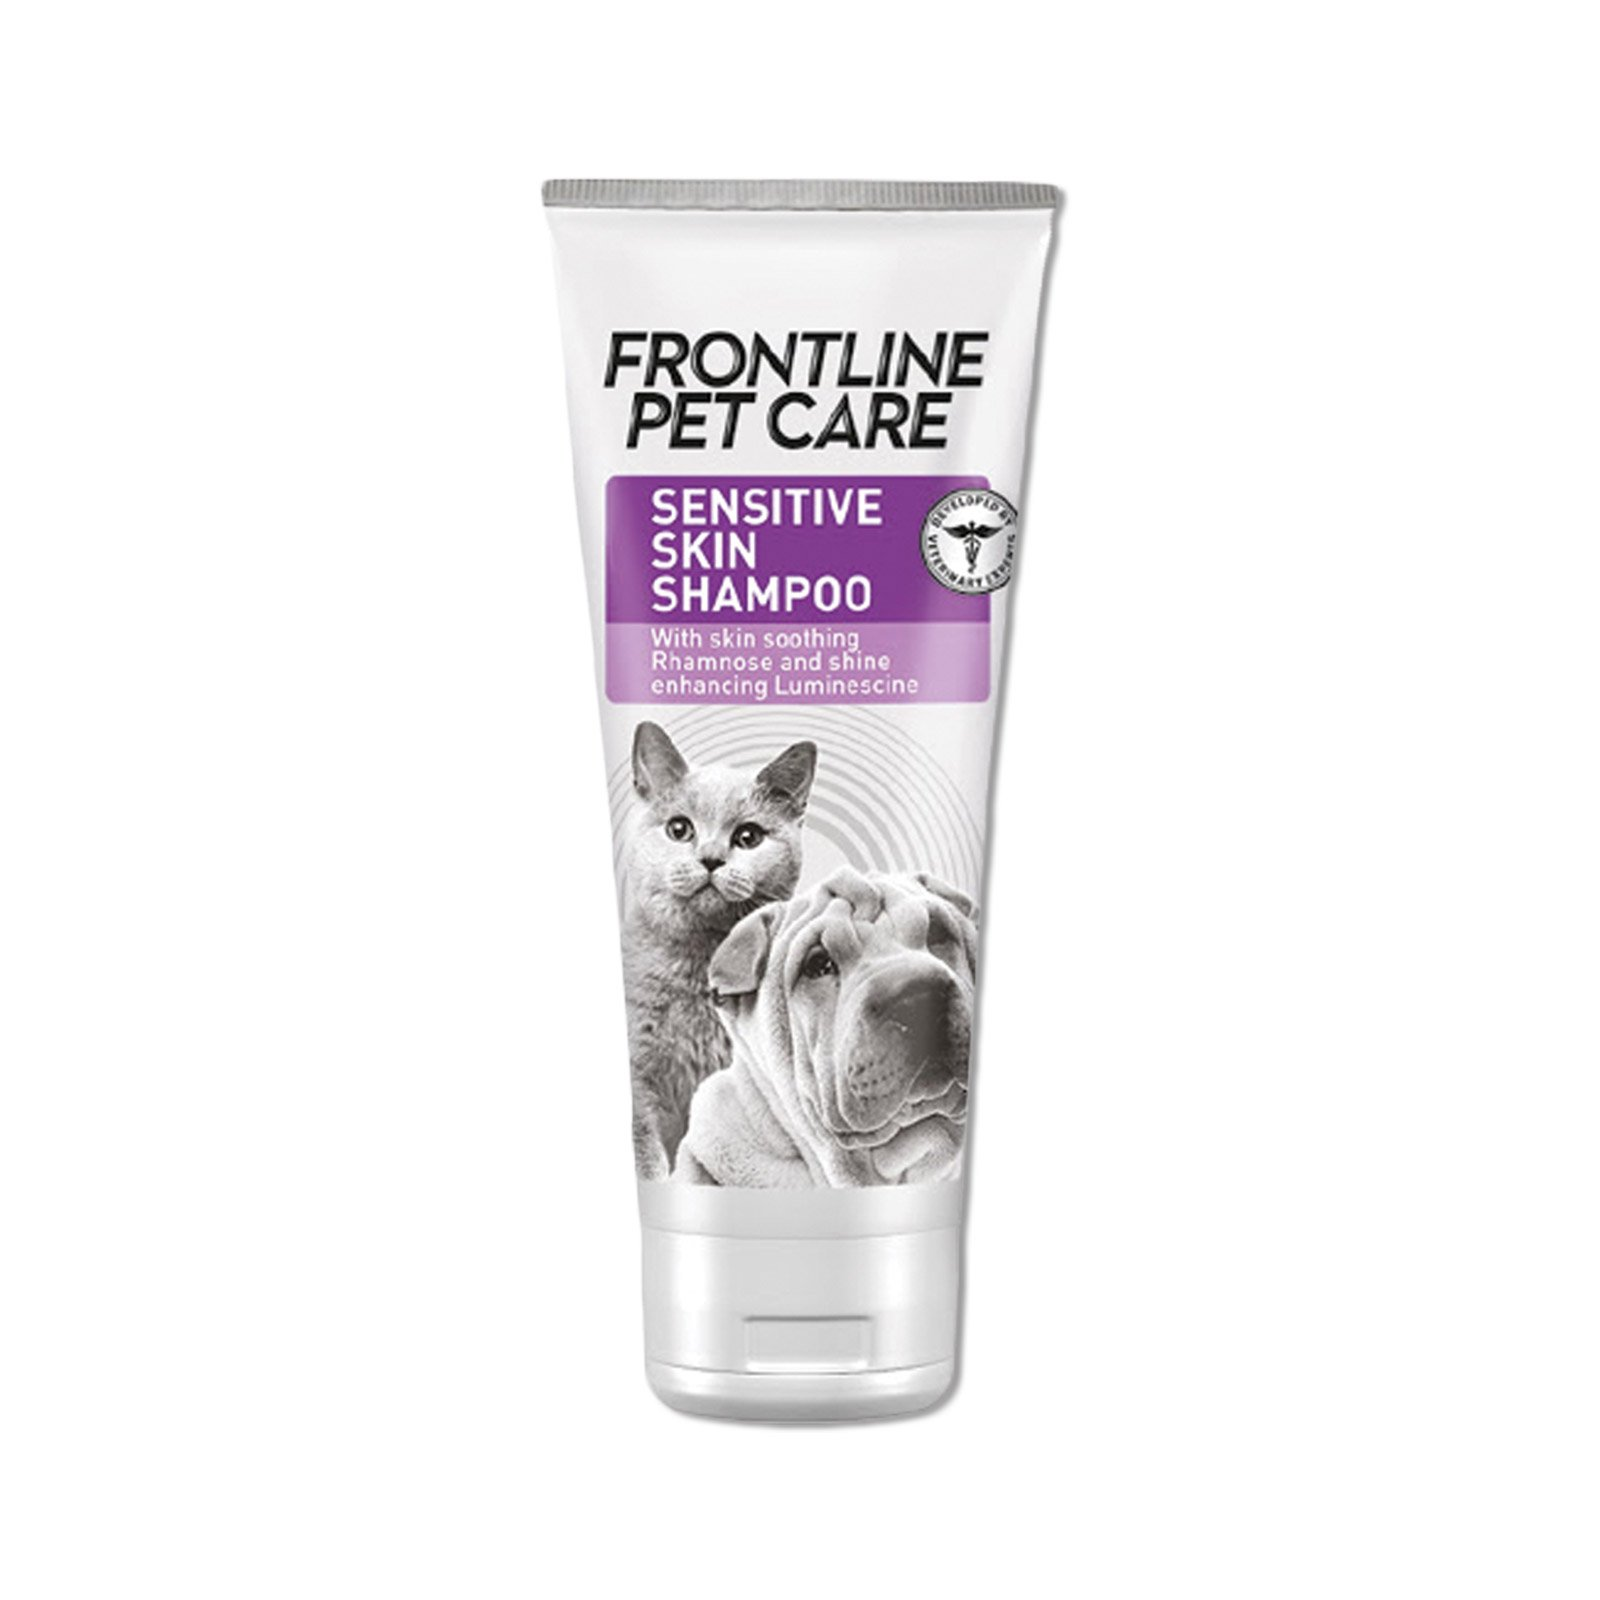 Frontline Pet Care Sensitive Skin Shampo for Dogs & Cats